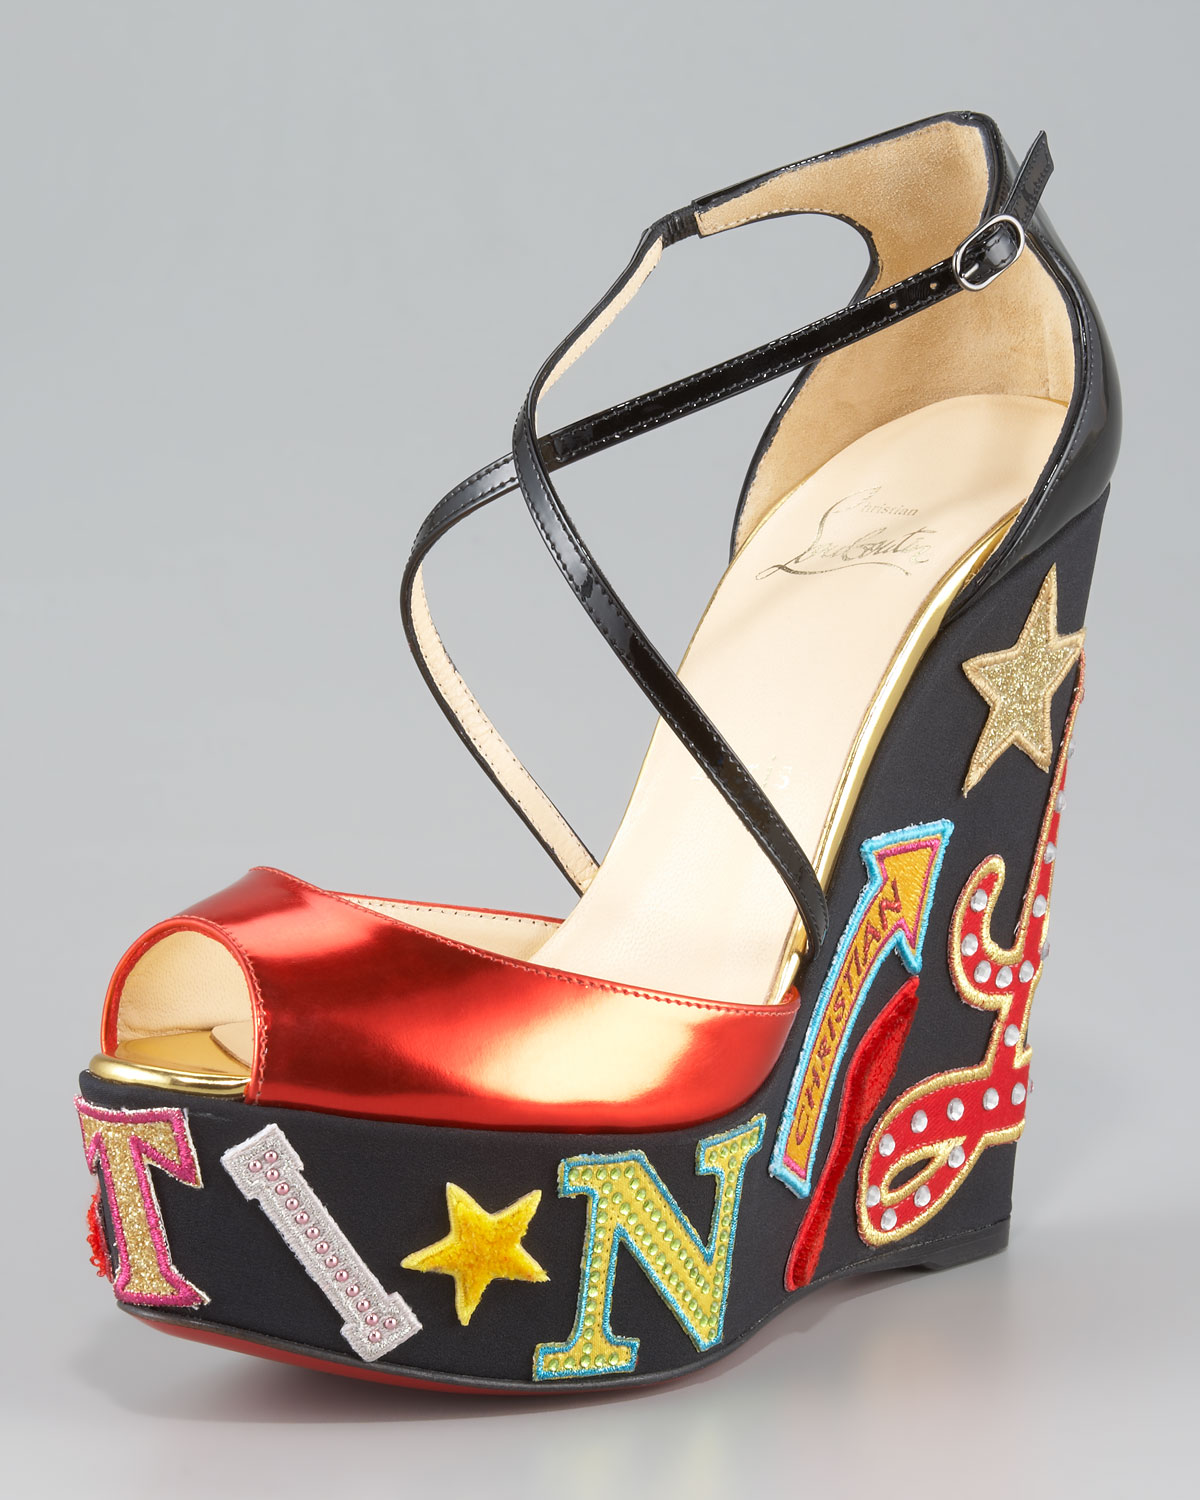 sale best prices cheap sale real Christian Louboutin Christian Louboutin Loubi Zeppa Wedges mj8dEi